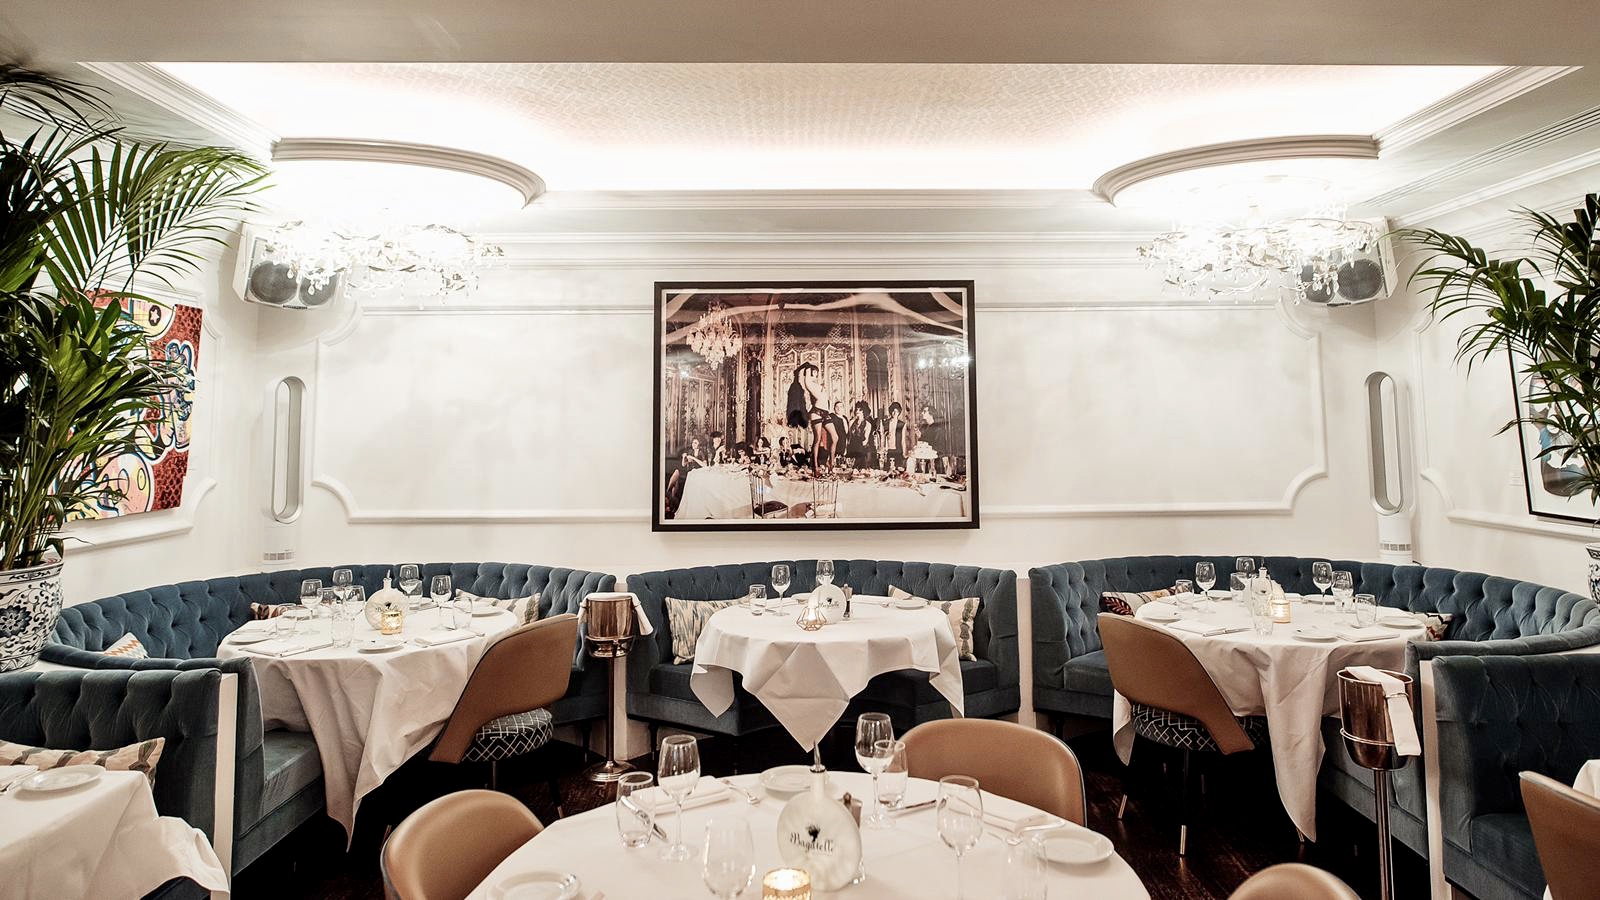 Bagatelle London London Private Dining Rehearsal Dinners Banquet Halls Tripleseat